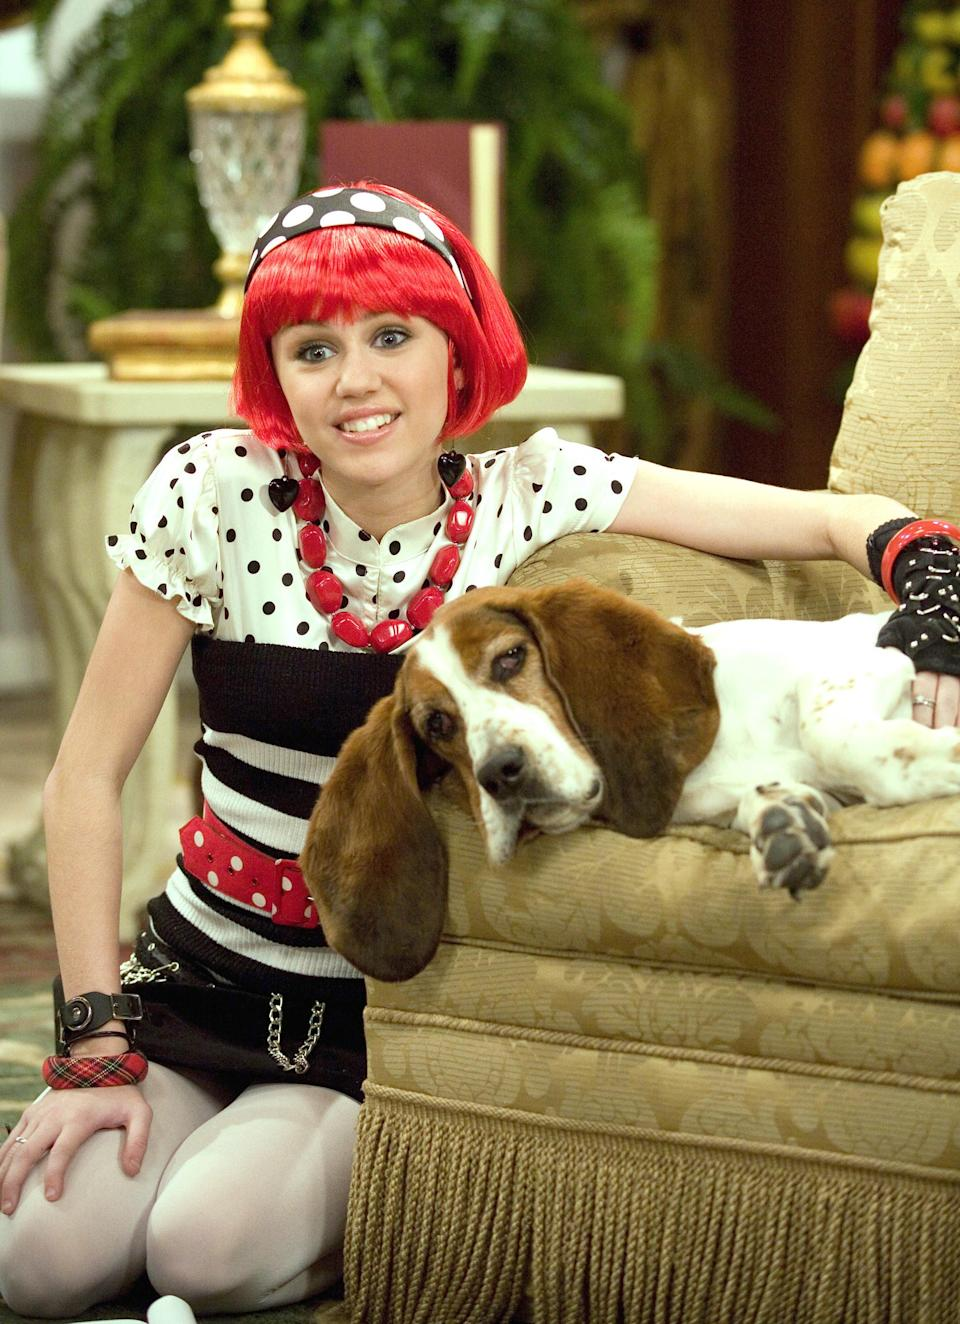 Miley in a Lola outfit with a striped sweater tipe top, a skirt with a chain belt, a puff sleeve polka top short sleeve top, a chunky necklace and bracelets, and tights